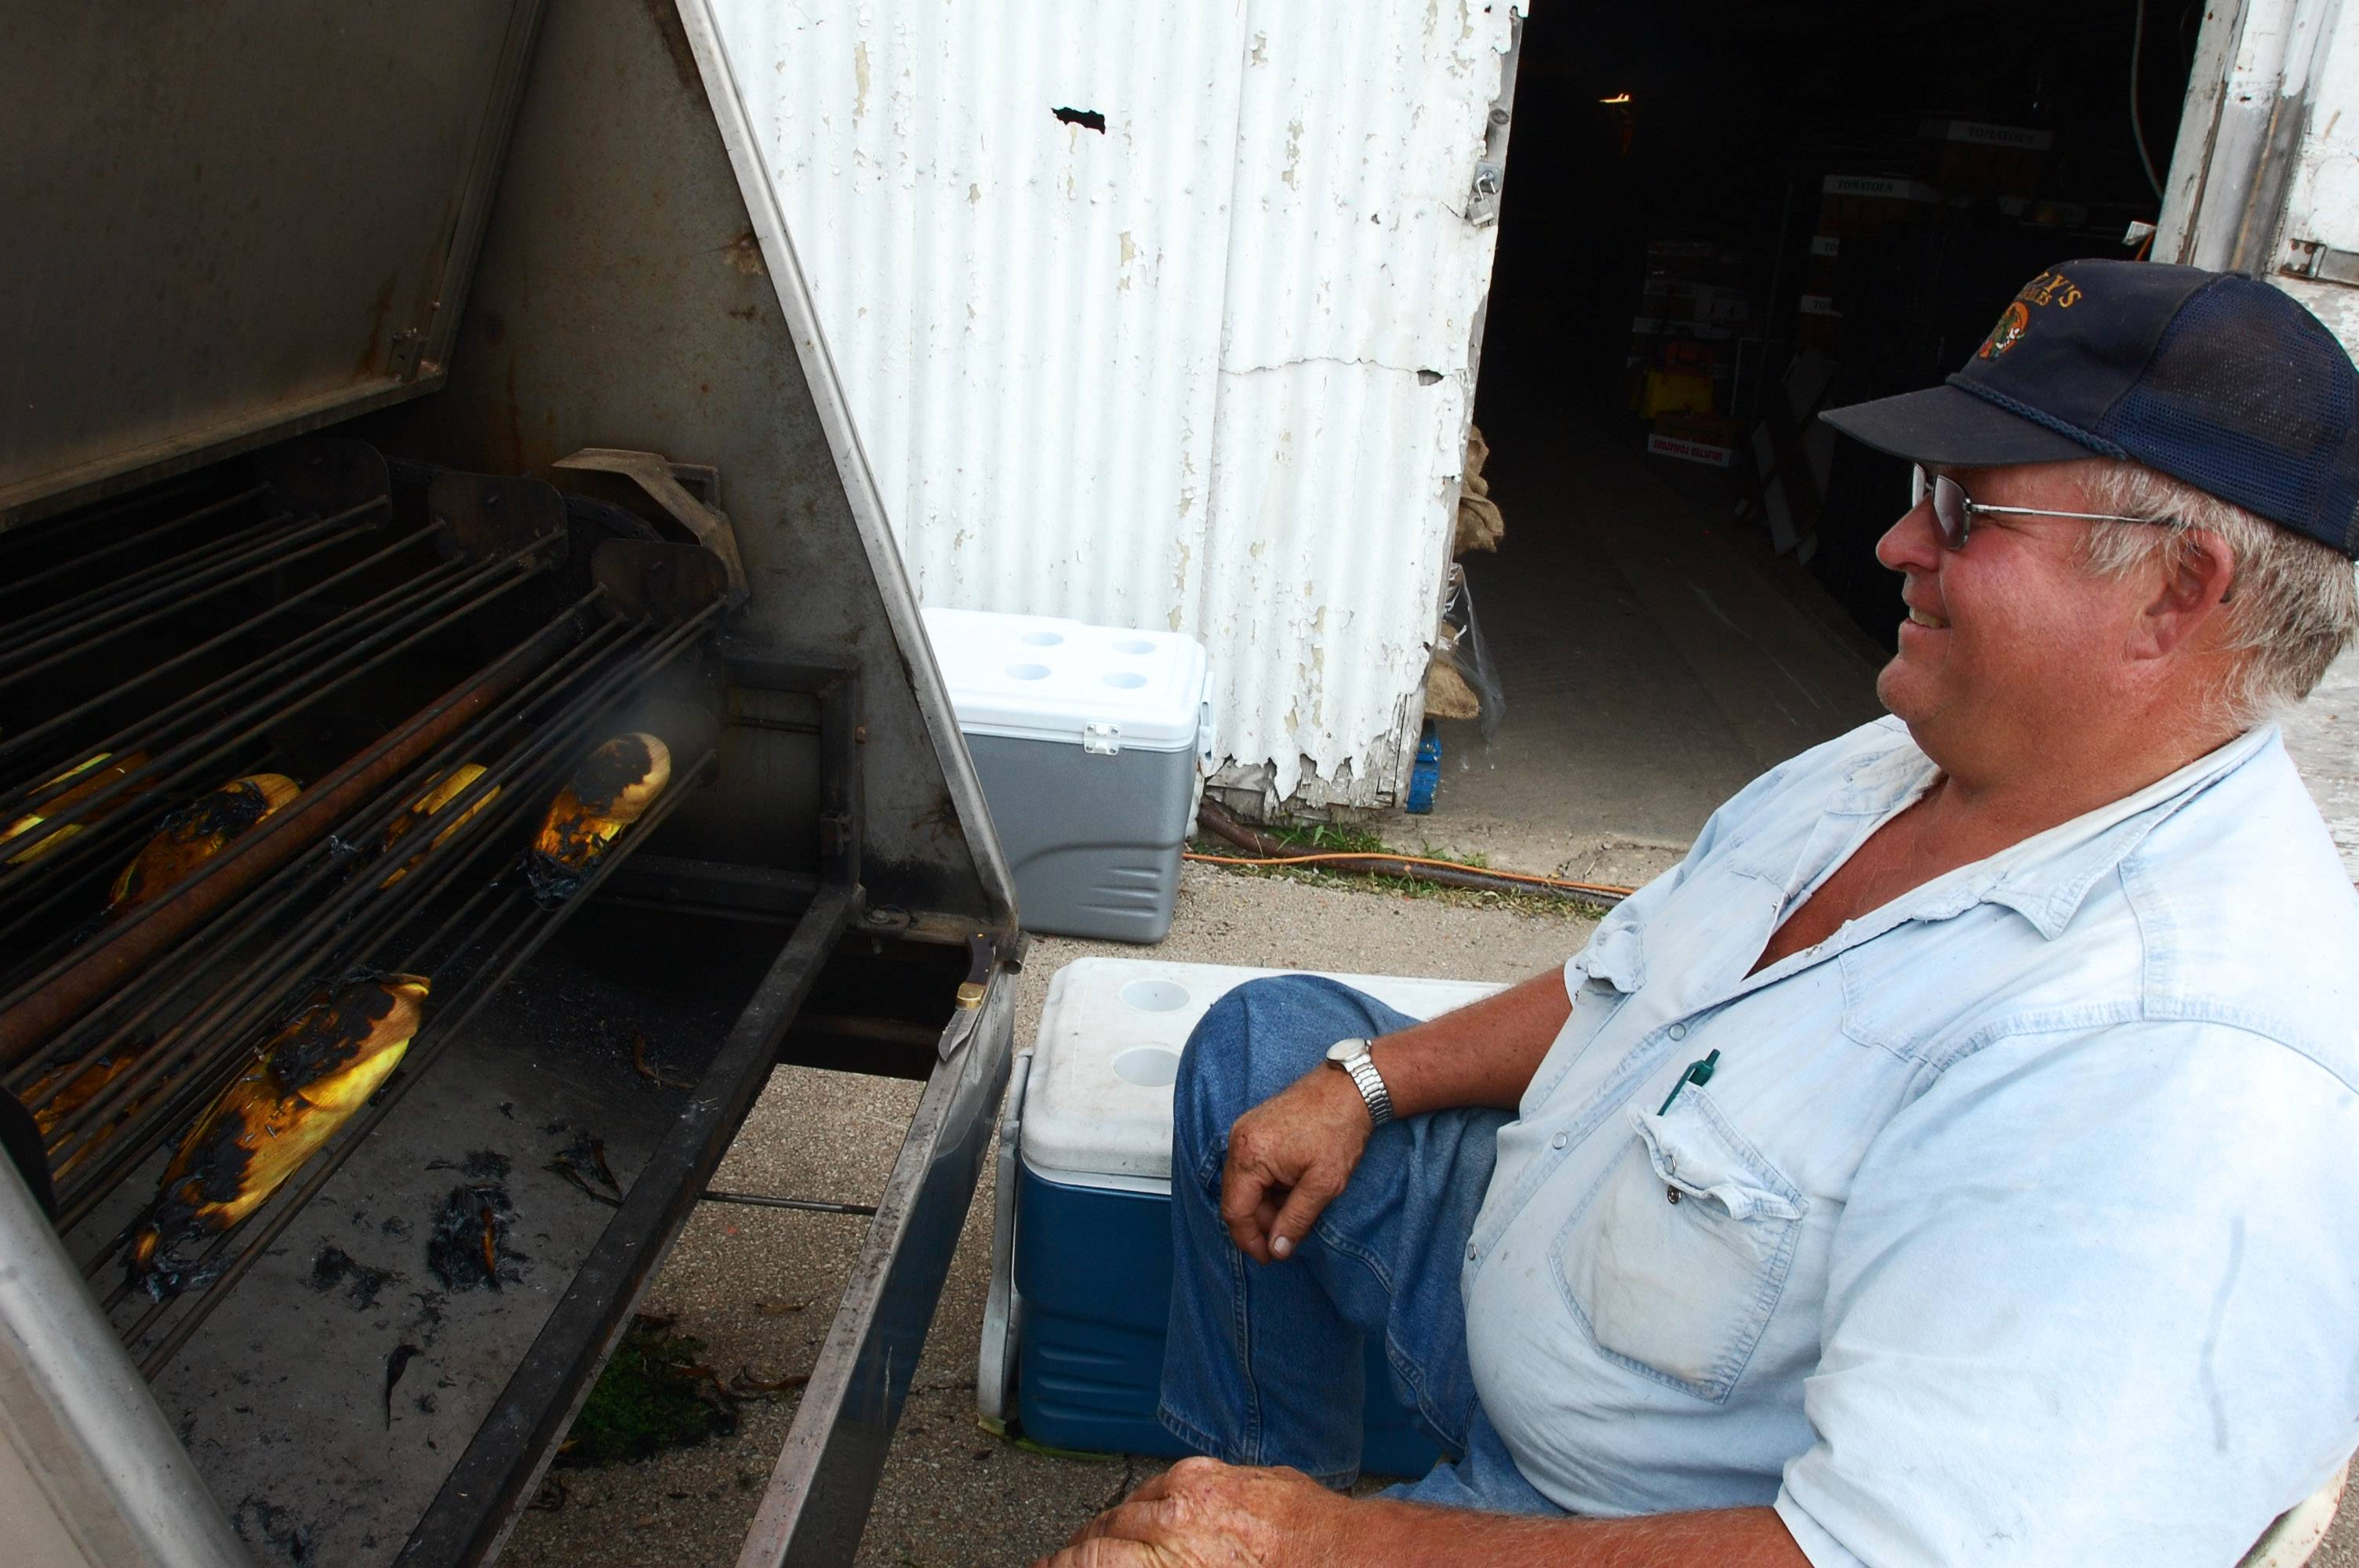 Randy Gaitsch, owner of Randy's Vegetables, keeps an eye on the ears of corn roasting at the third annual Corn Roast fundraiser in Sleepy Hollow. The event, which takes place Sunday, Aug. 10, raises money for Special Olympics Illinois.